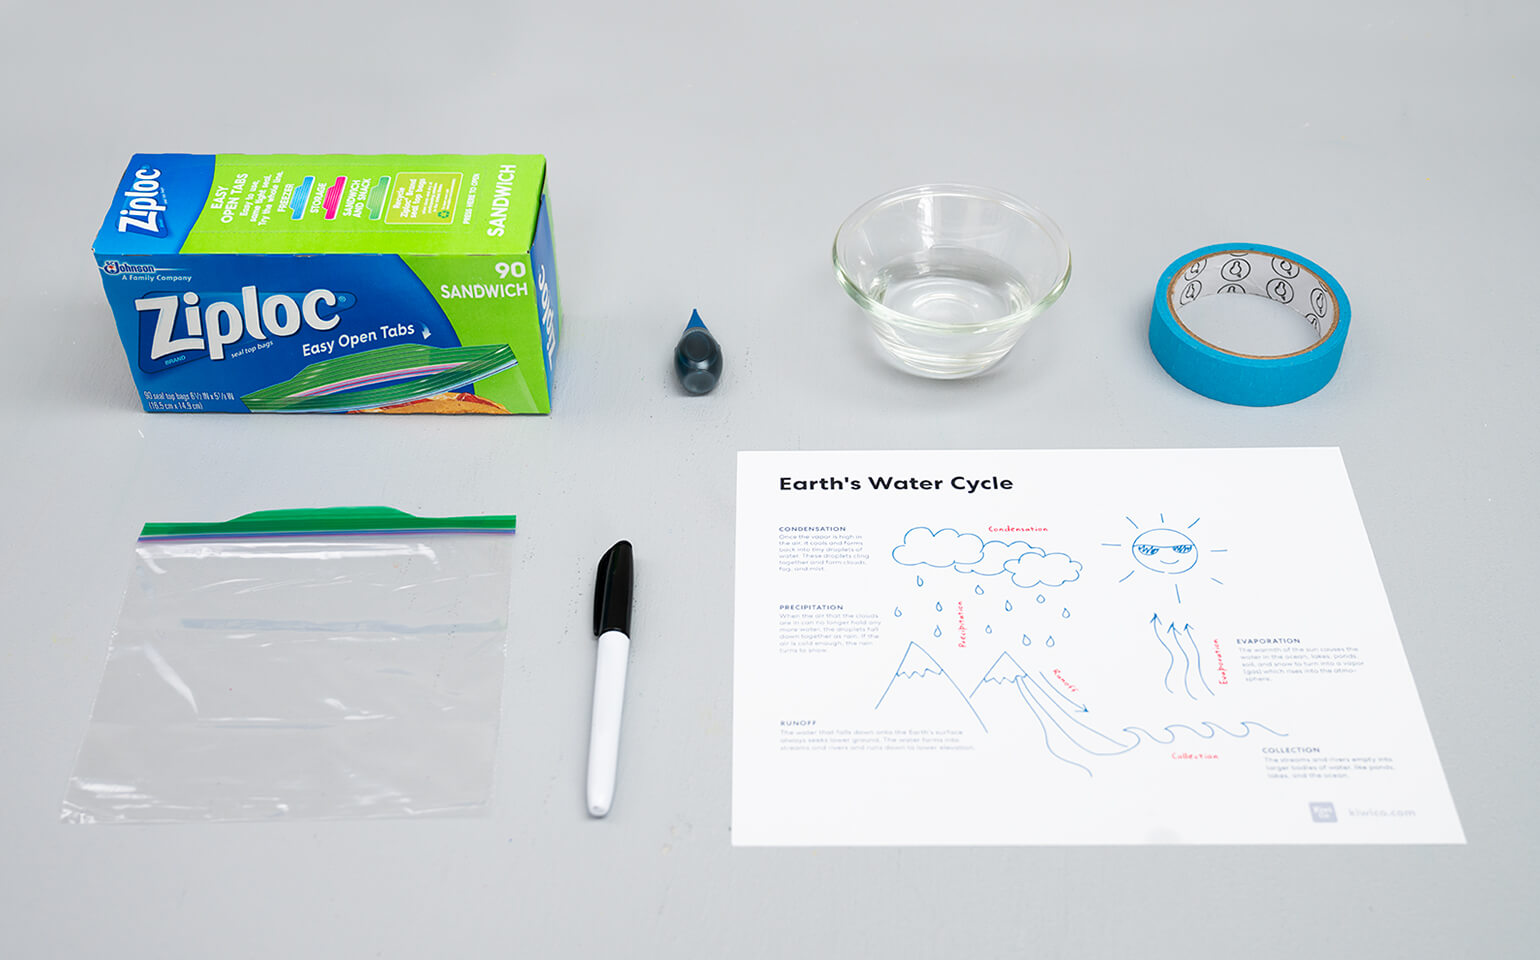 Water-Cycle-Bag-Body-1-2x